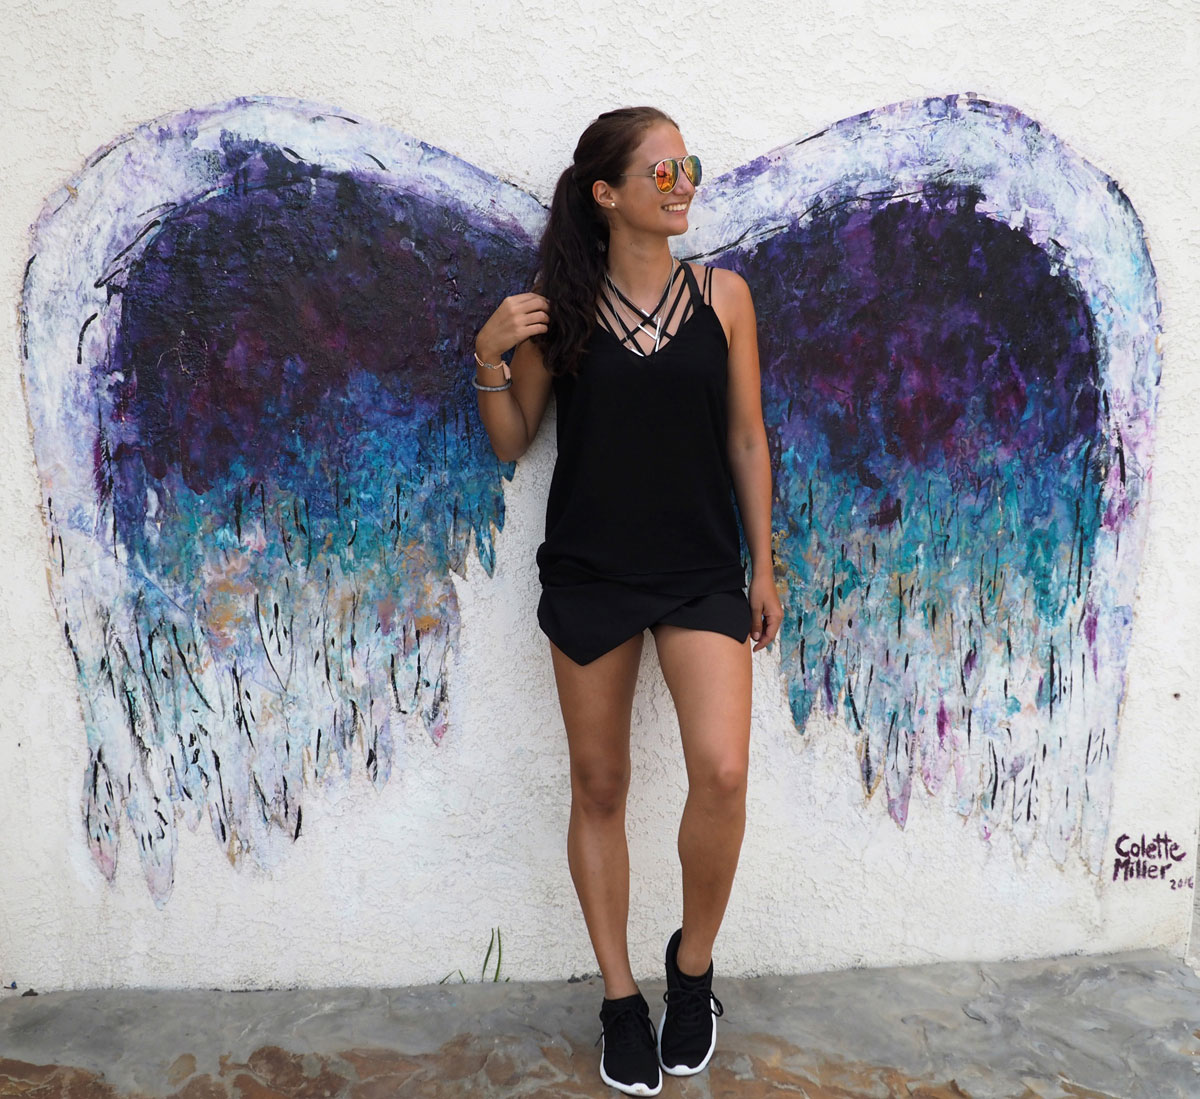 hermosabeach-colettemiller-angelwings